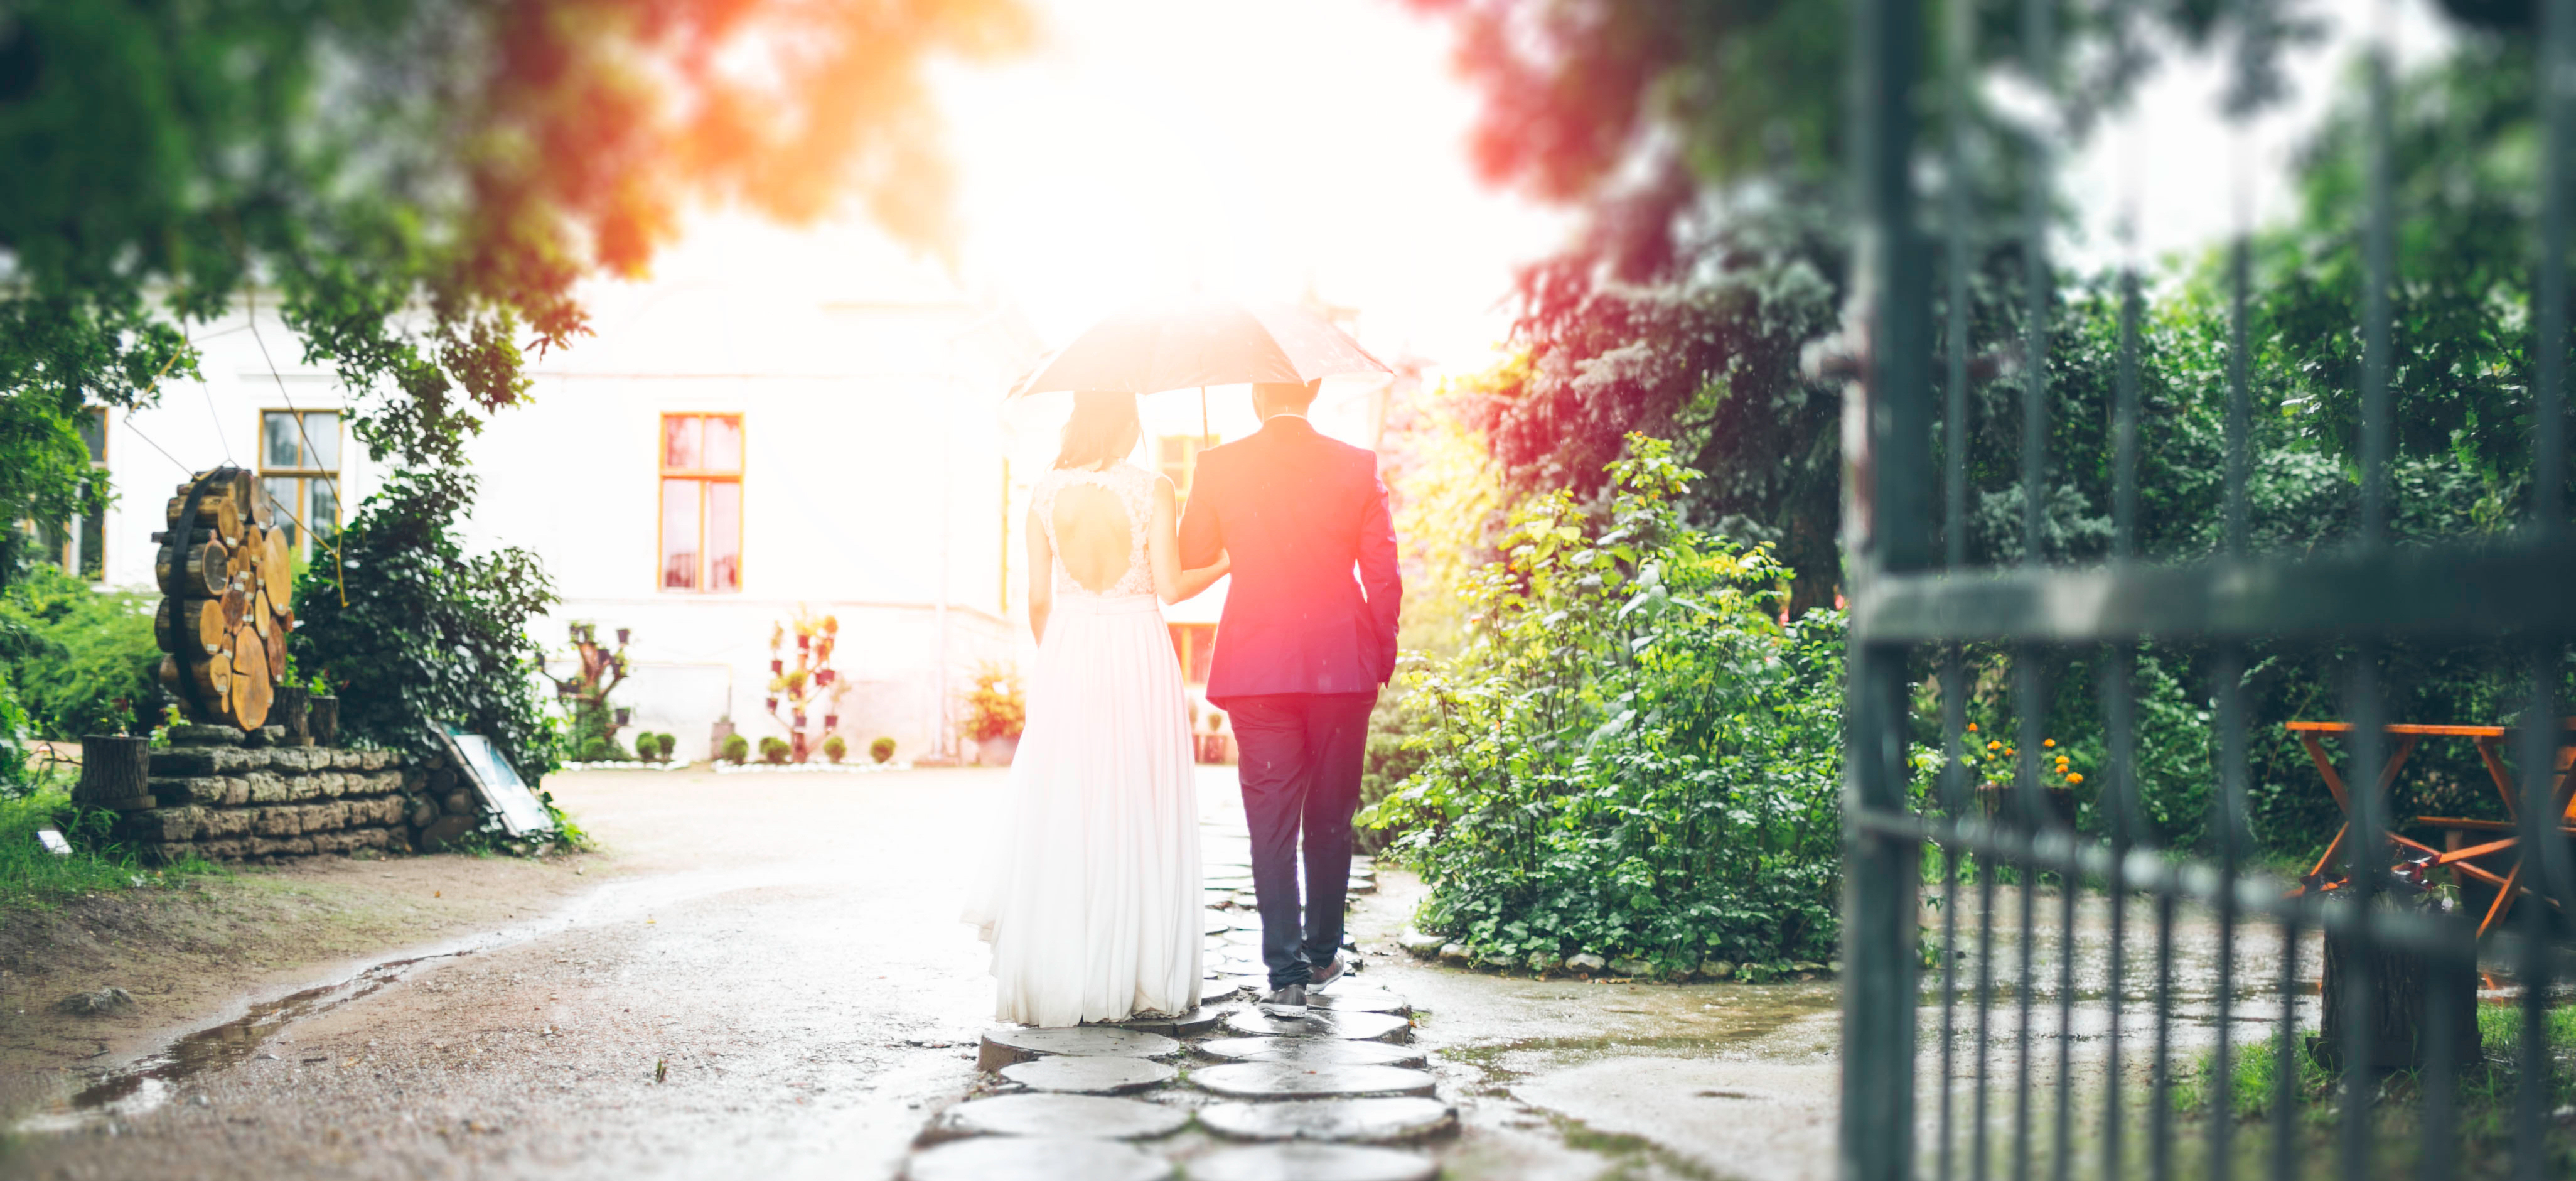 So, You've Had A Dream About A Future Spouse . . .